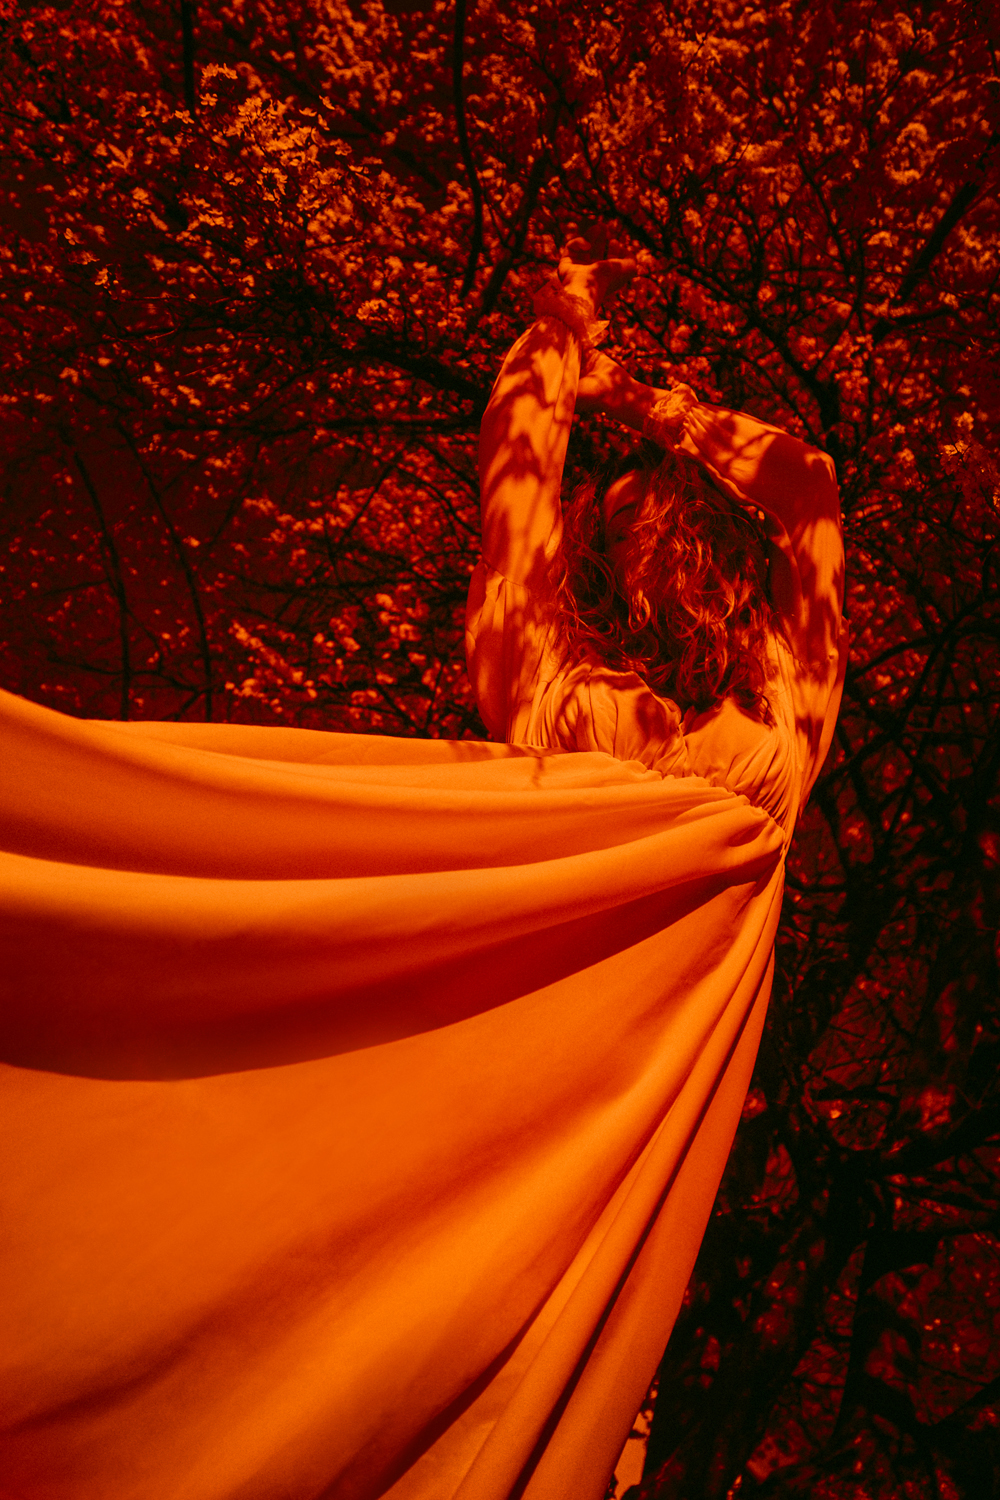 """Photo series """"Celebrate the rebirth of nature, spring"""" from artist Ness Rubey"""